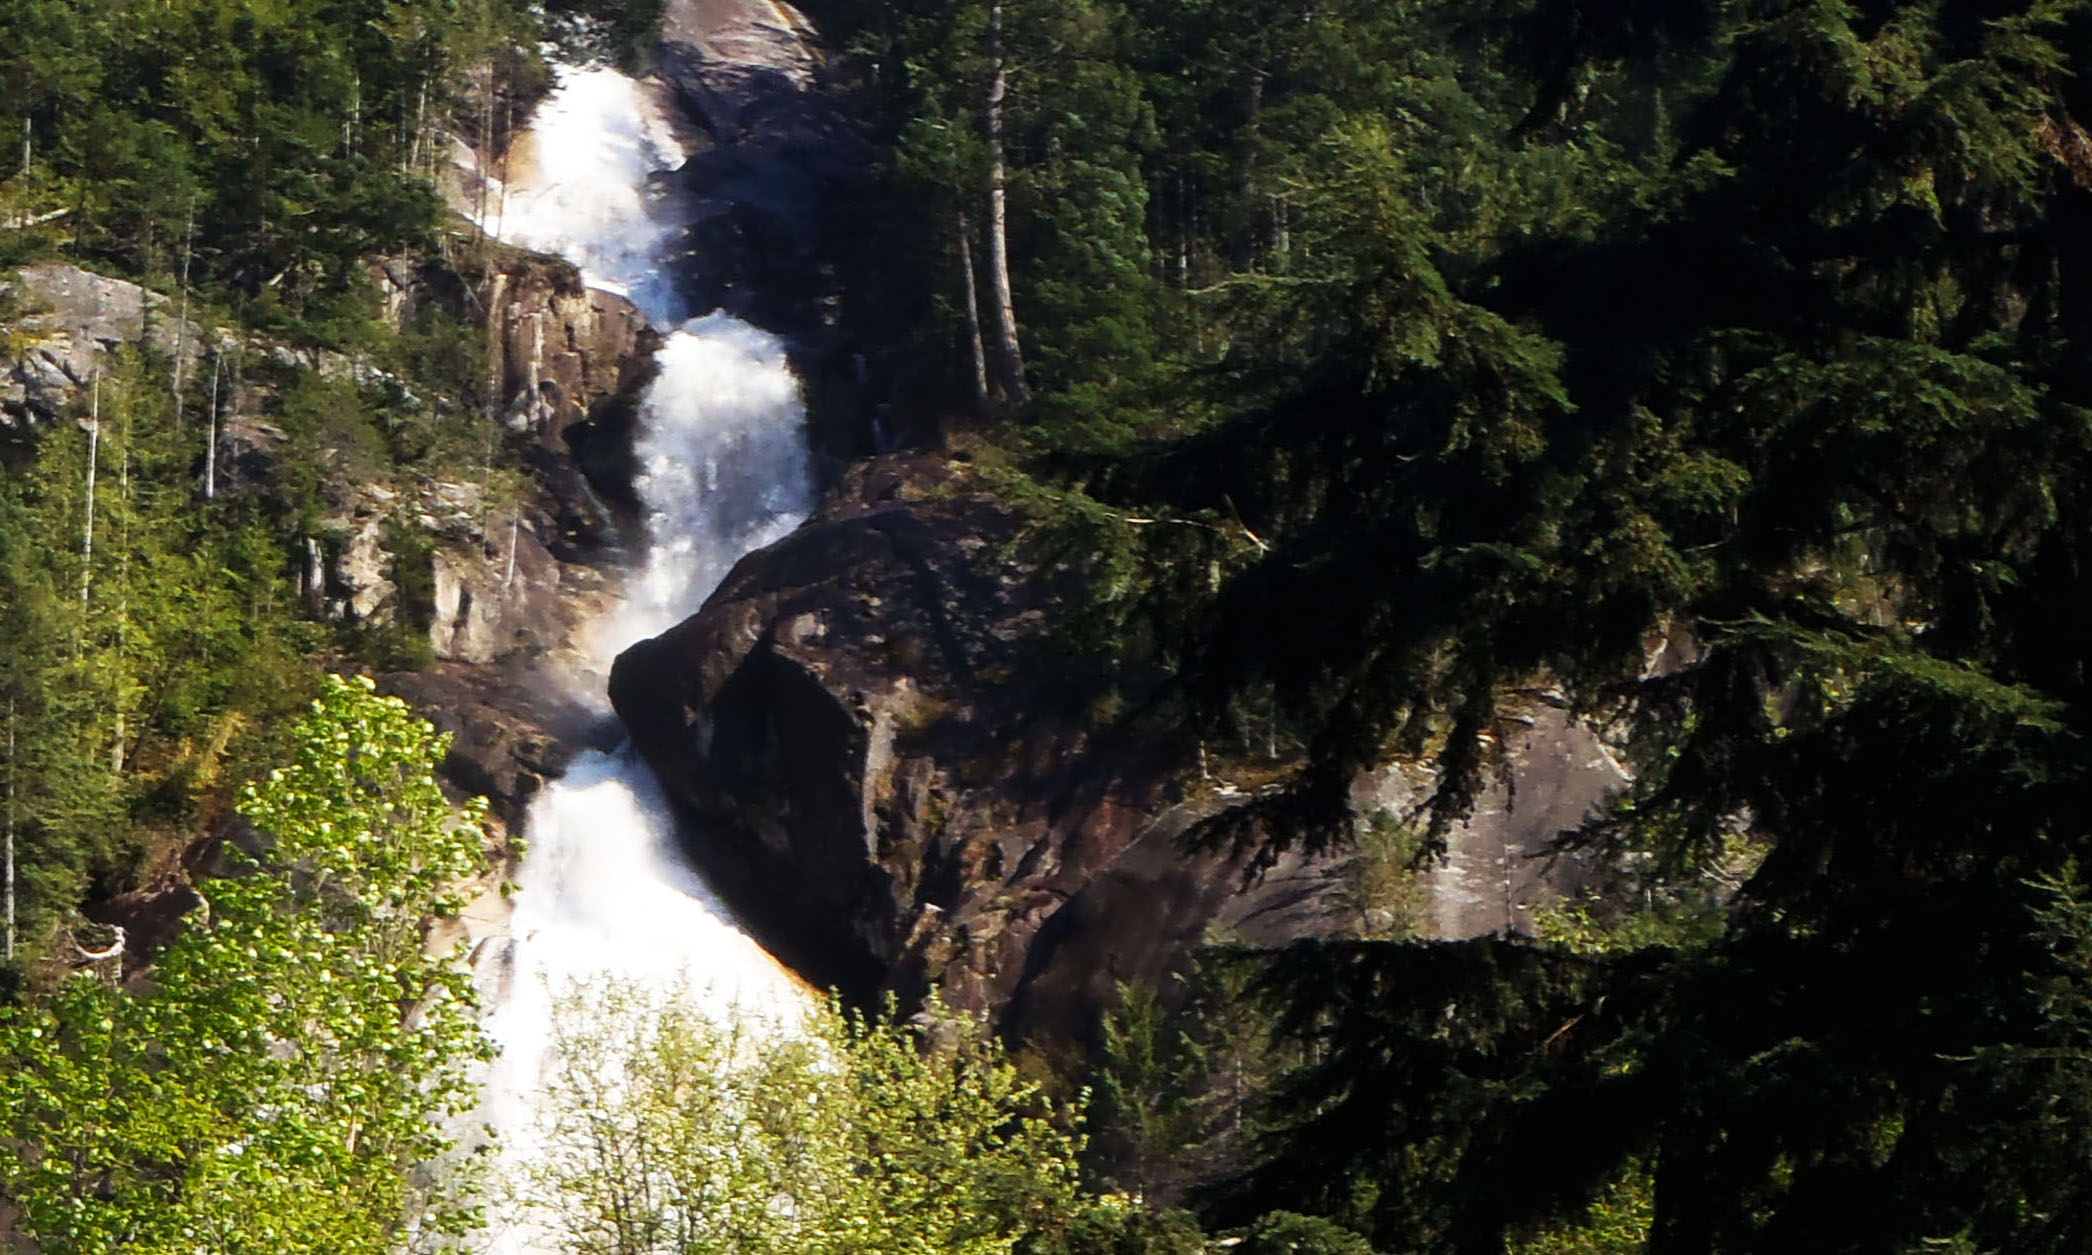 Shannon falls during a Squamish tour.